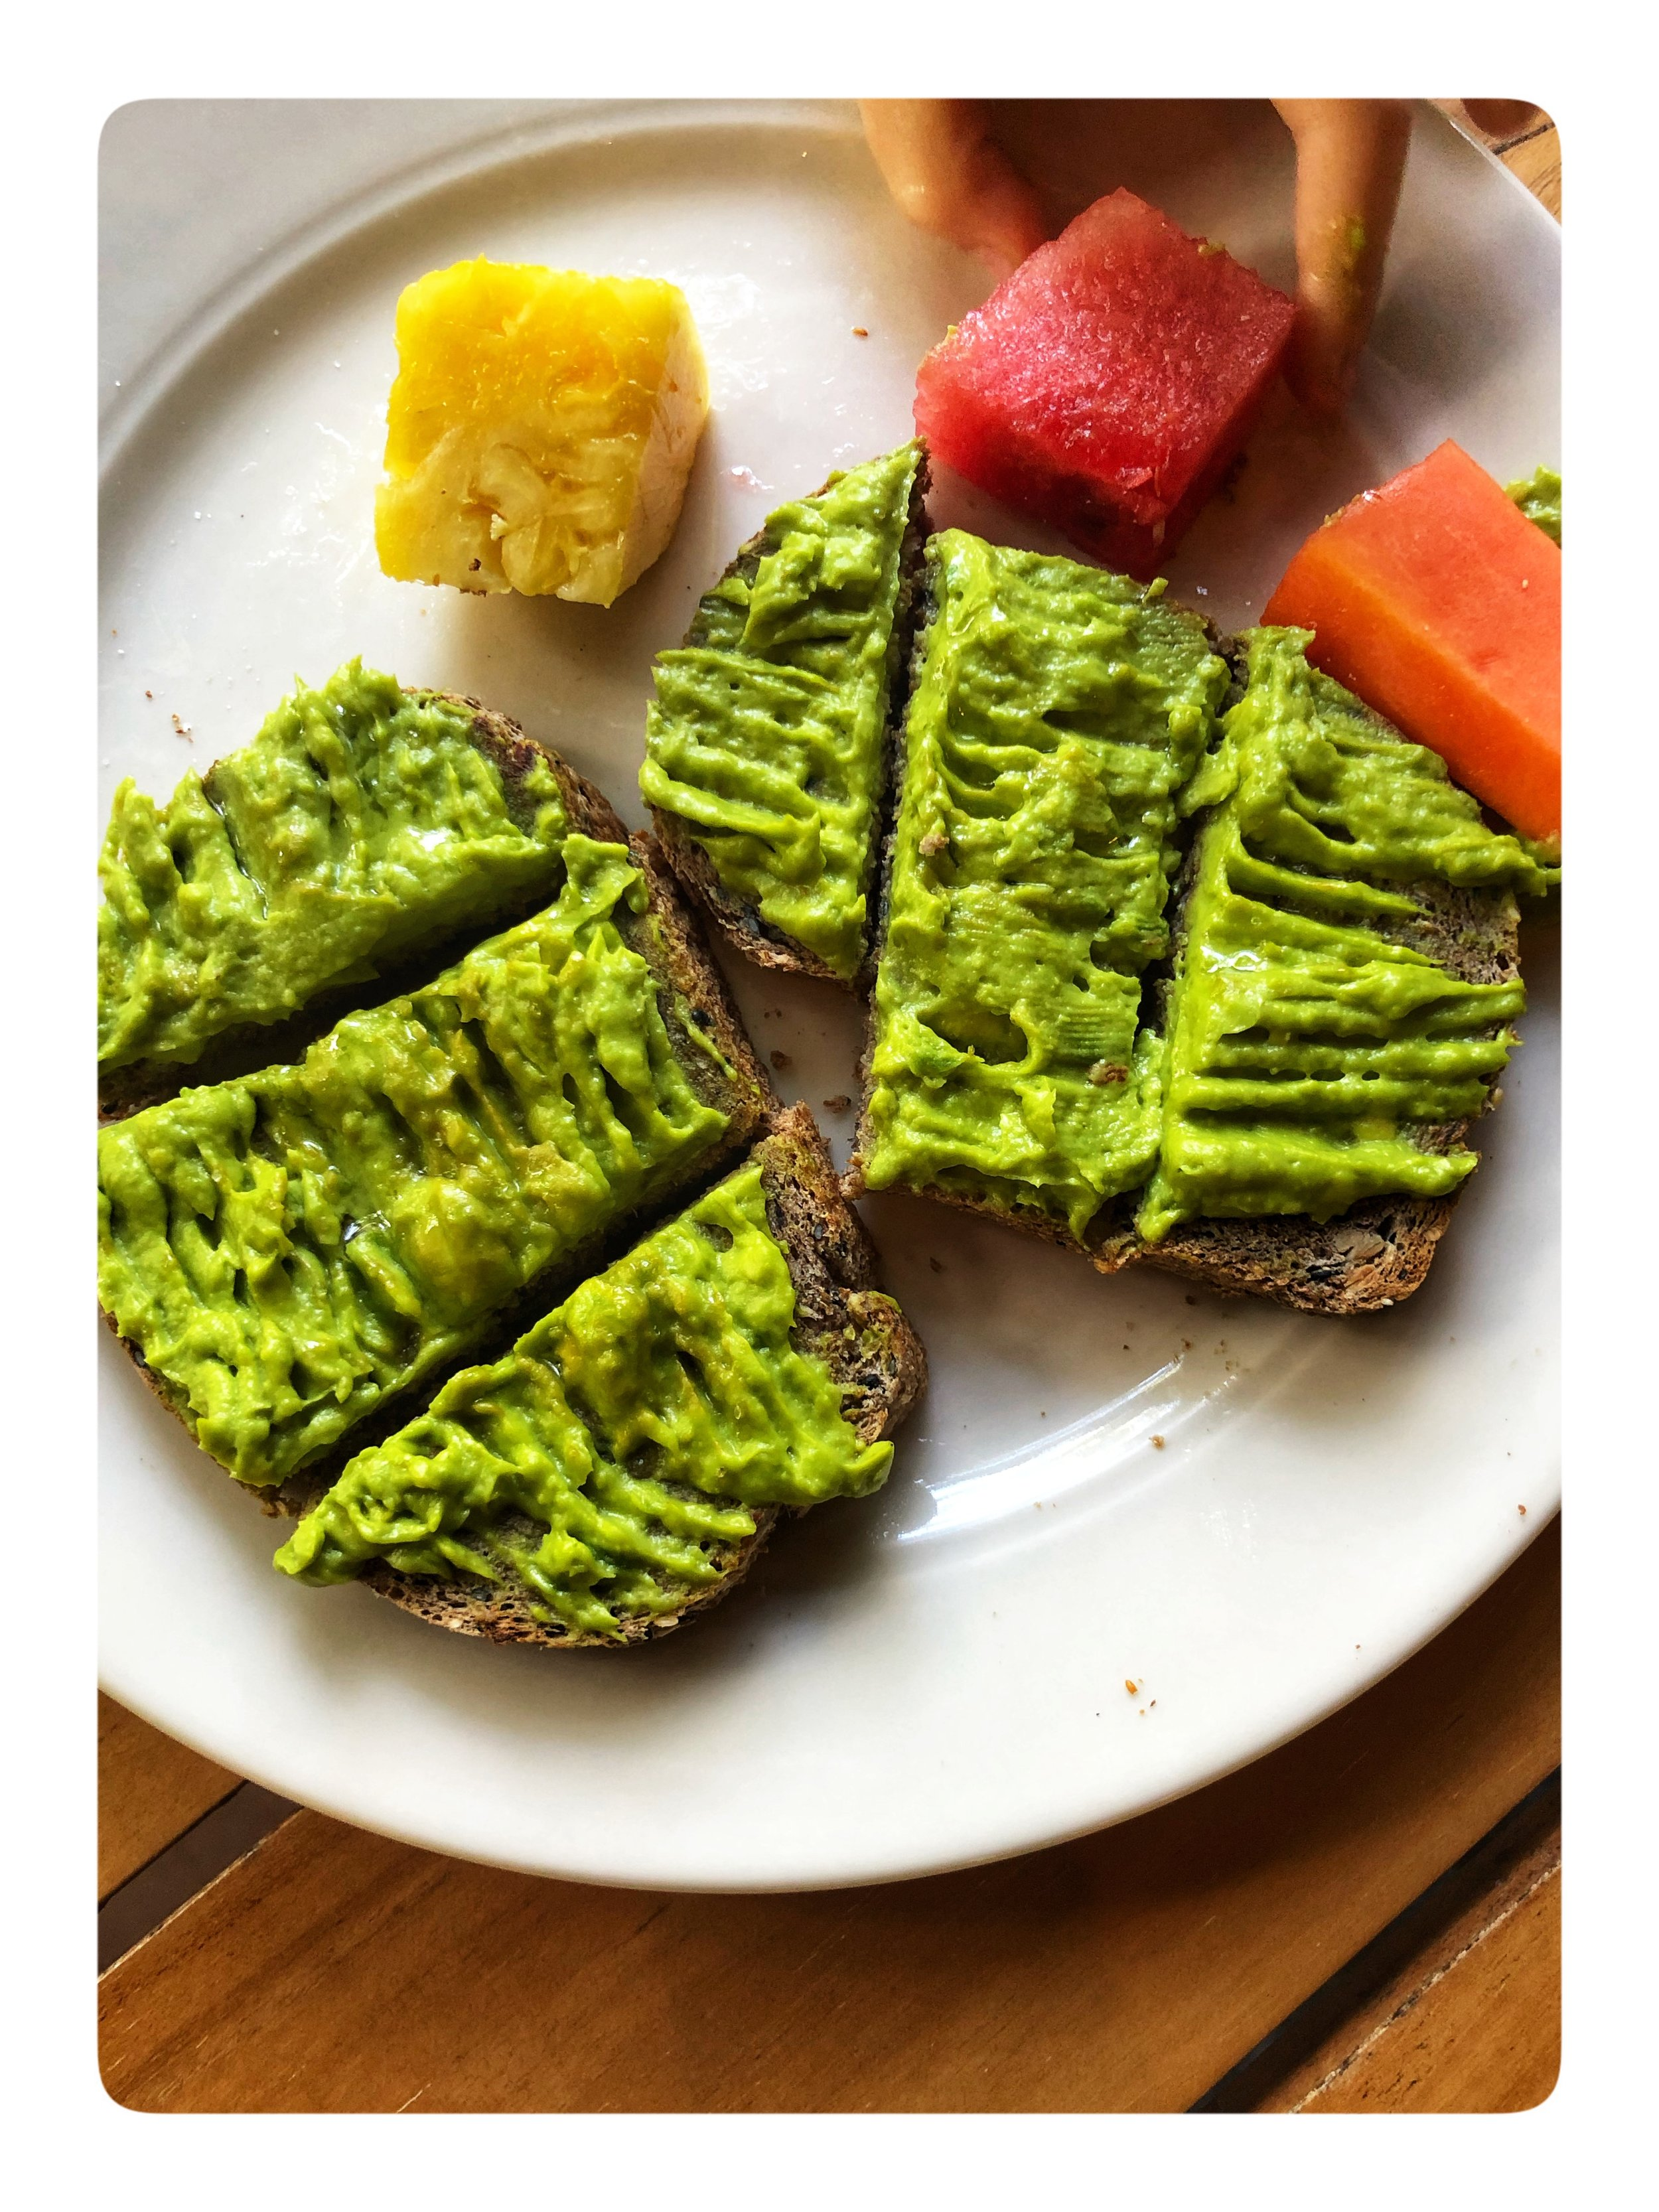 Avocado Toast is arguably the greatest way to start your day and so easy to make. Enjoy!